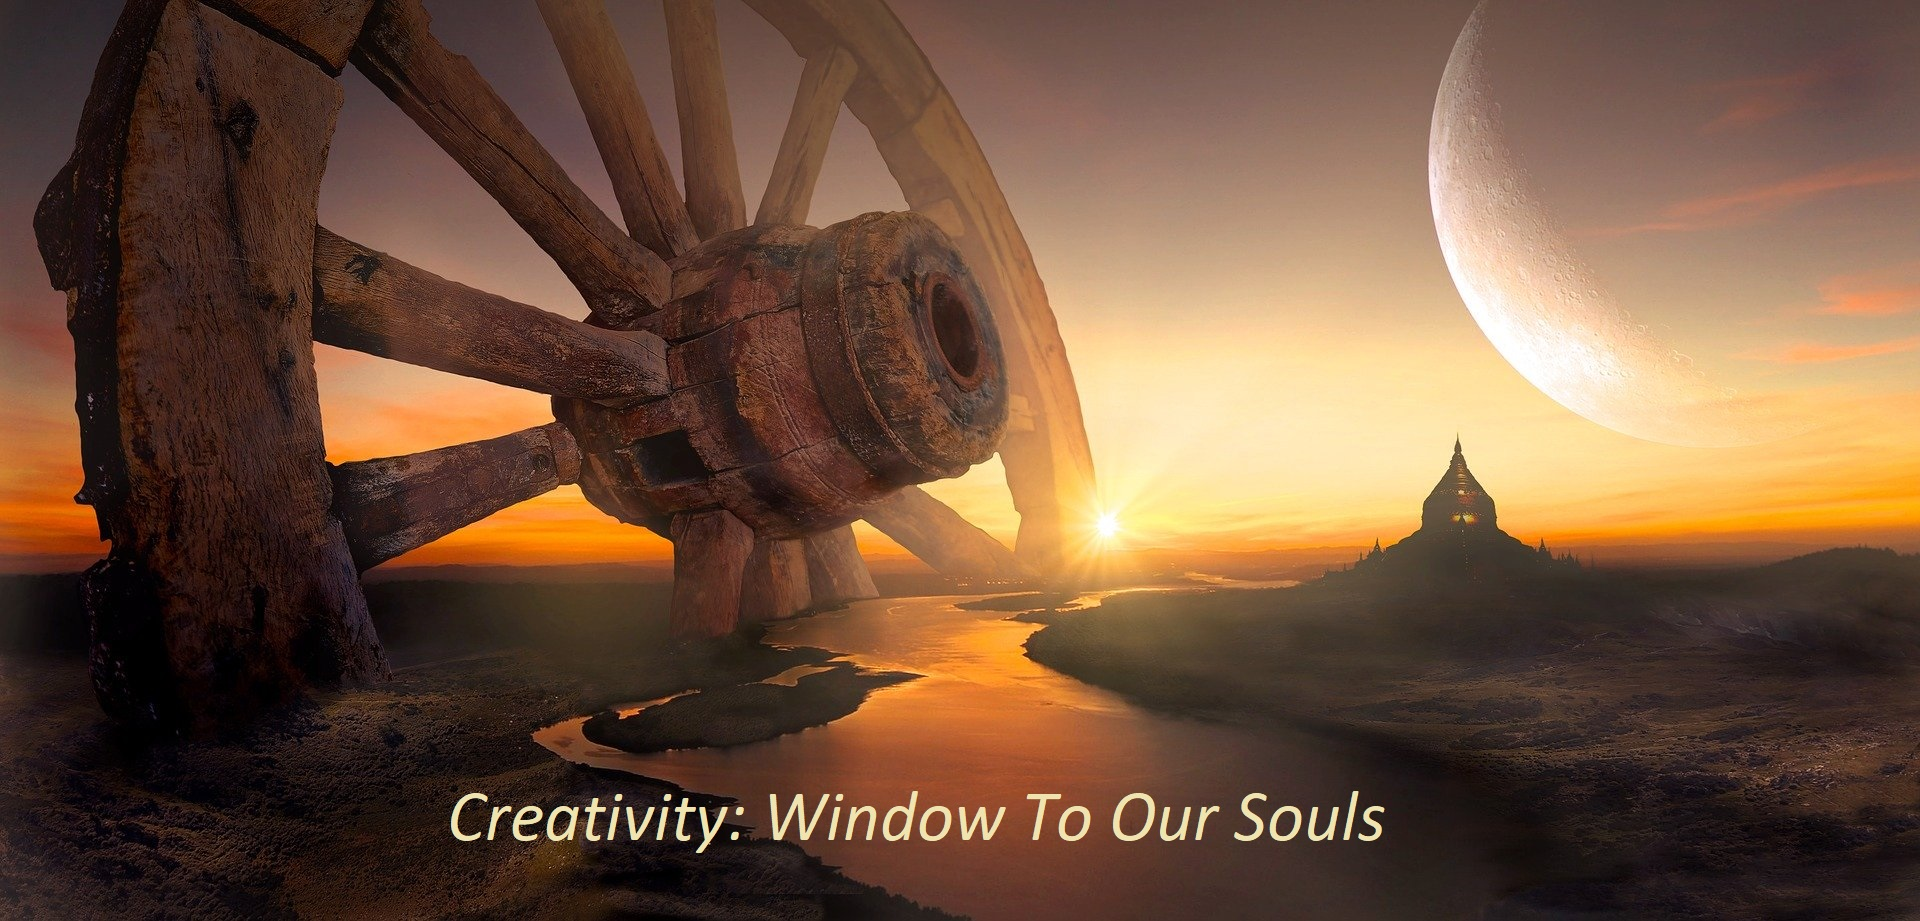 Creativity: Window To Our Souls